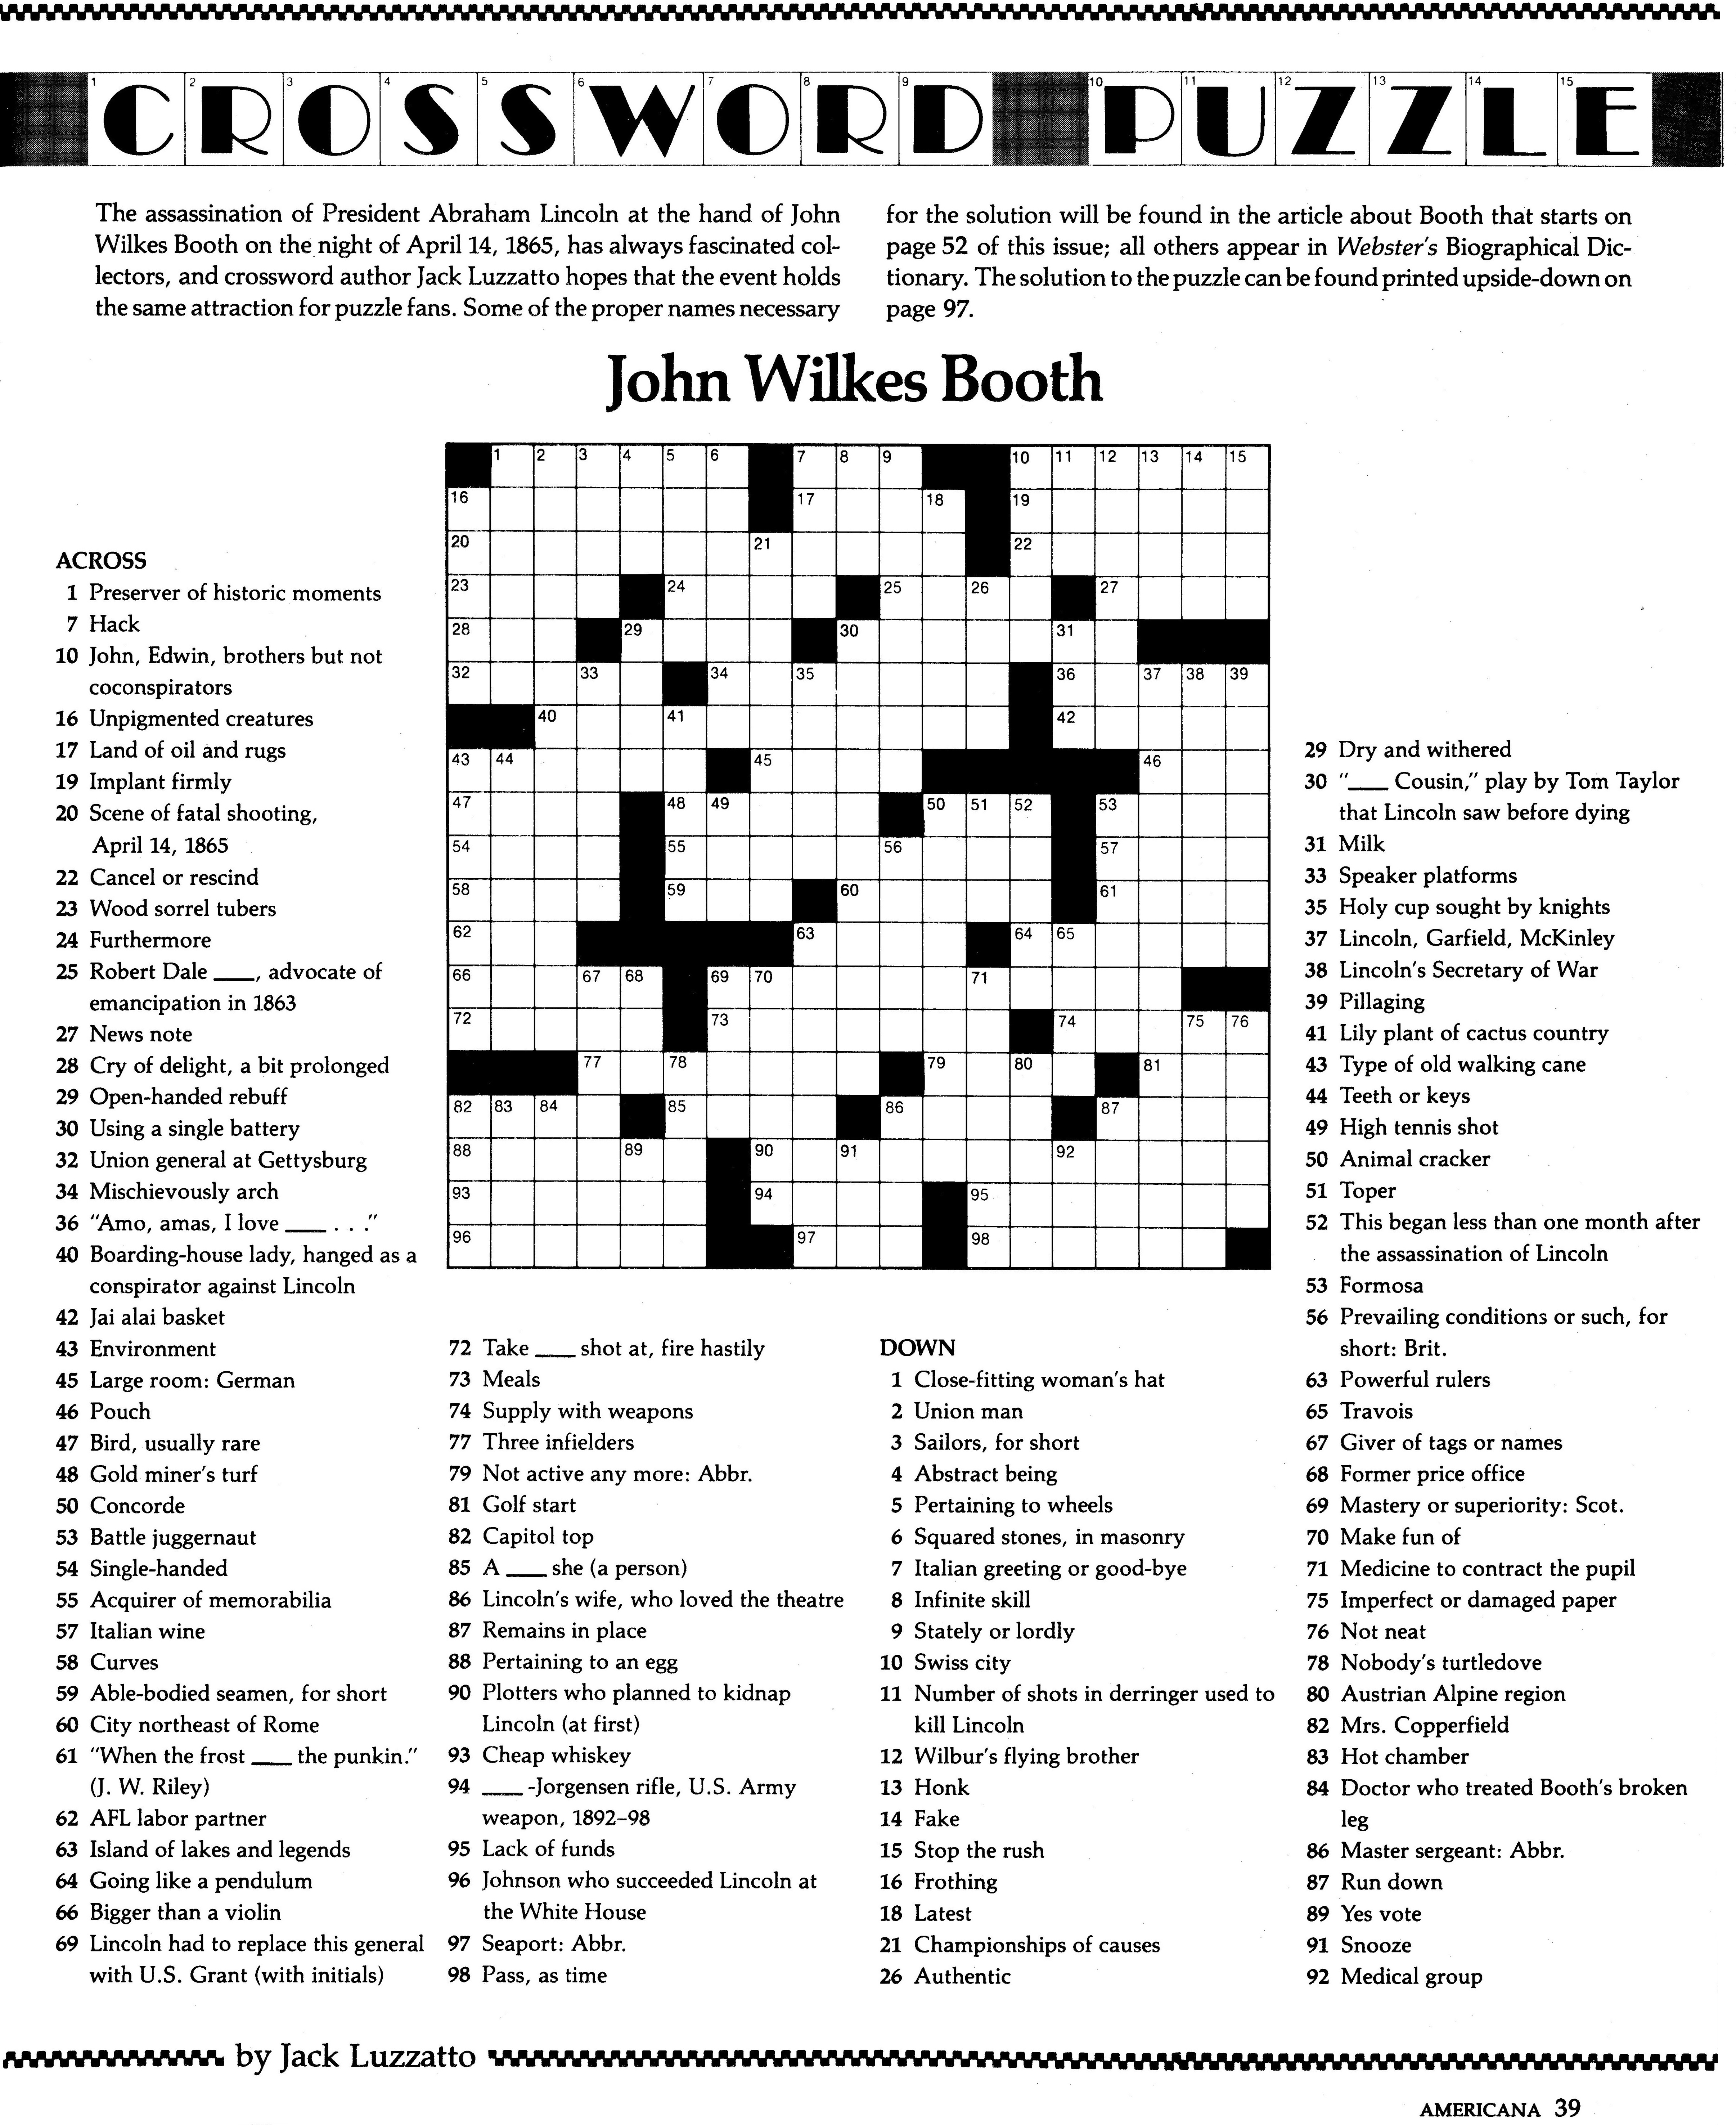 John Wilkes Booth Crossword Puzzle - Americana Magazine - April 1980  sc 1 st  BoothieBarn & Uncategorized | BoothieBarn | Page 5 25forcollege.com